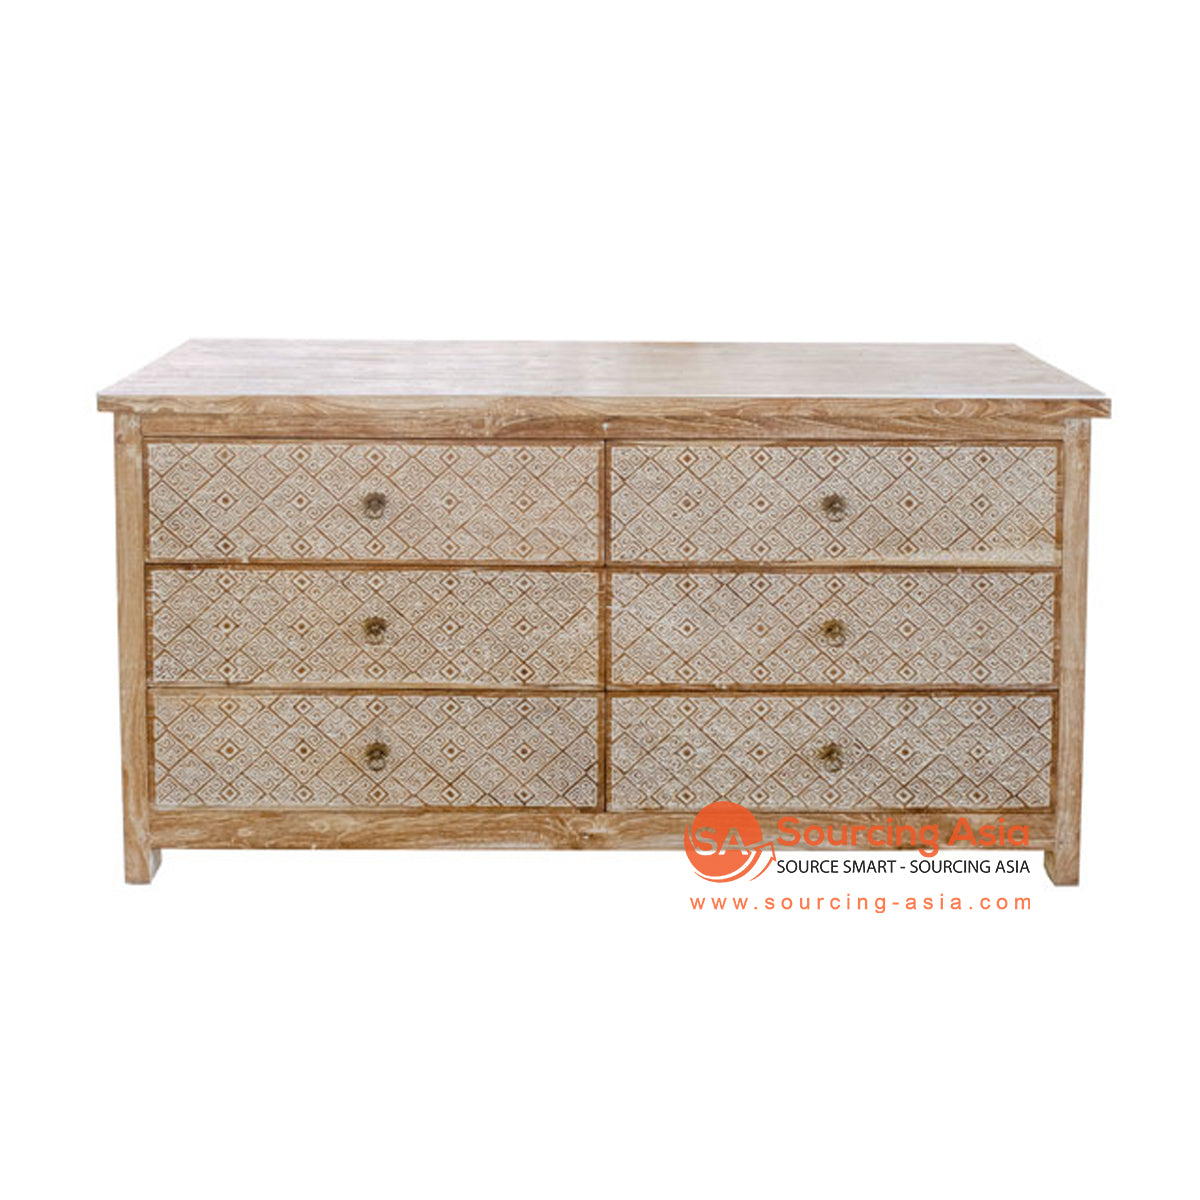 SHL195 NATURAL TEAK WOOD SIX DRAWERS BUFFET